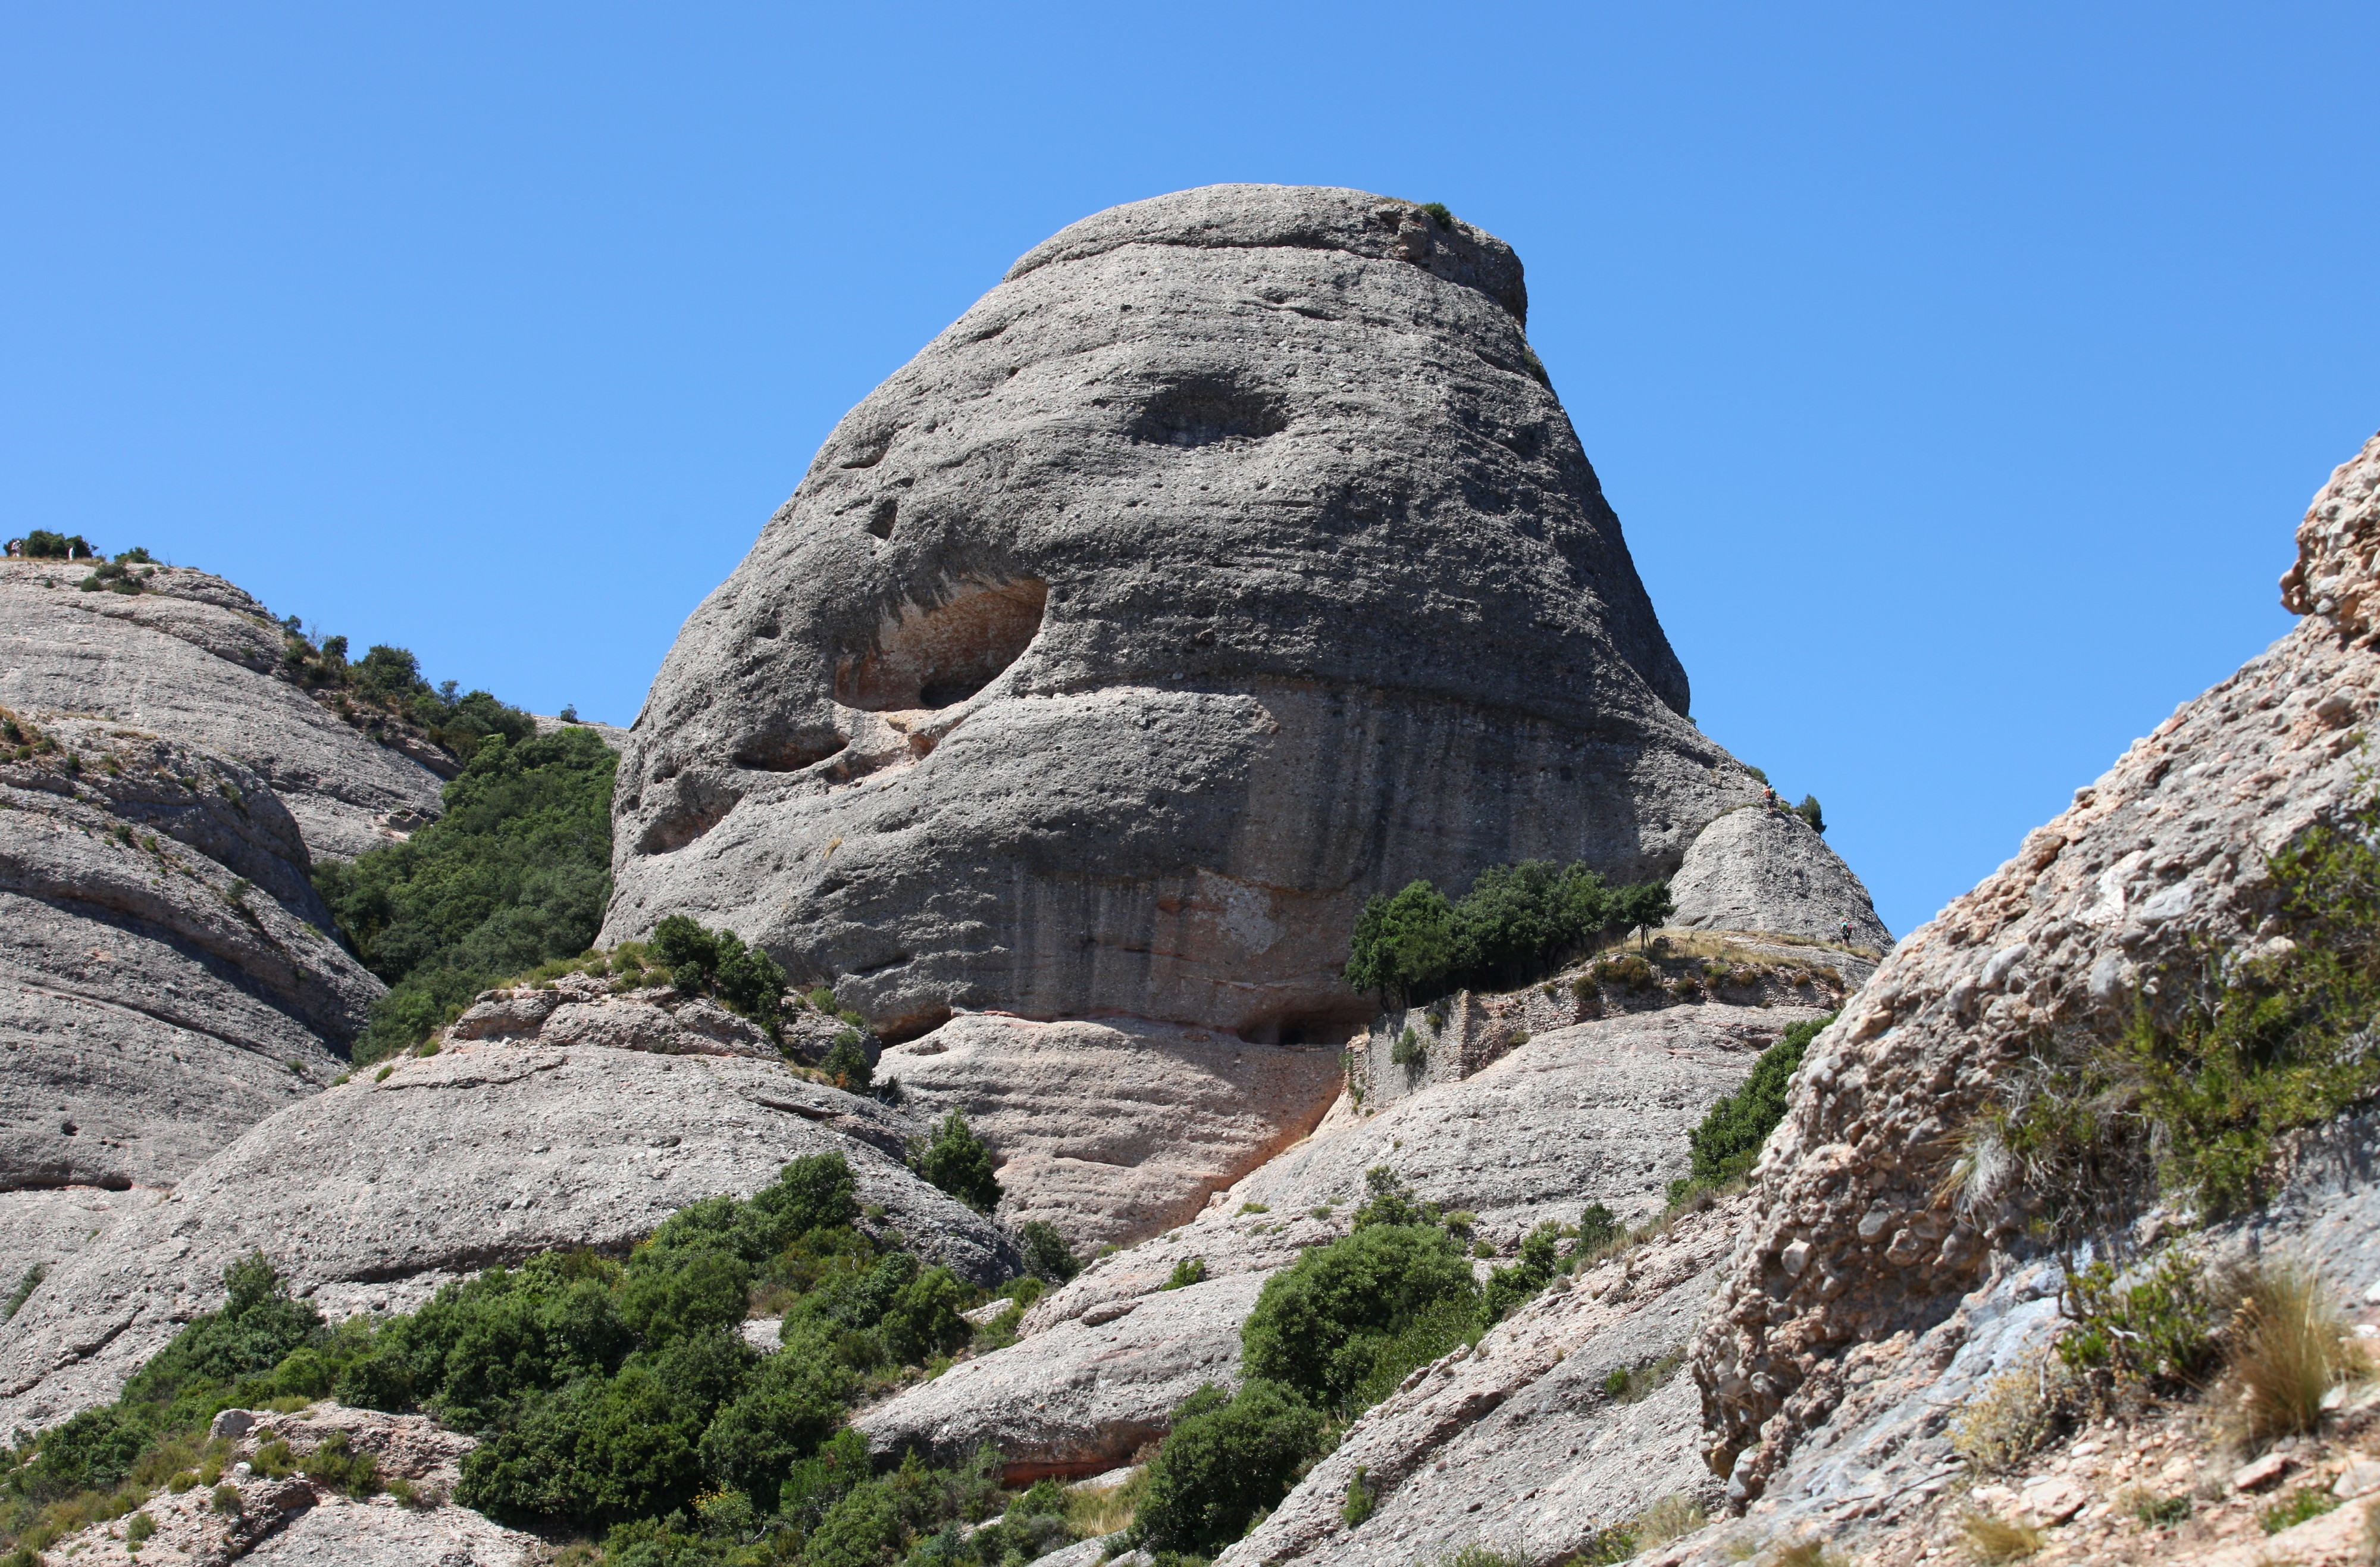 Montserrat mountain, Catalonia, Spain, Europe, August 2013, picture 13